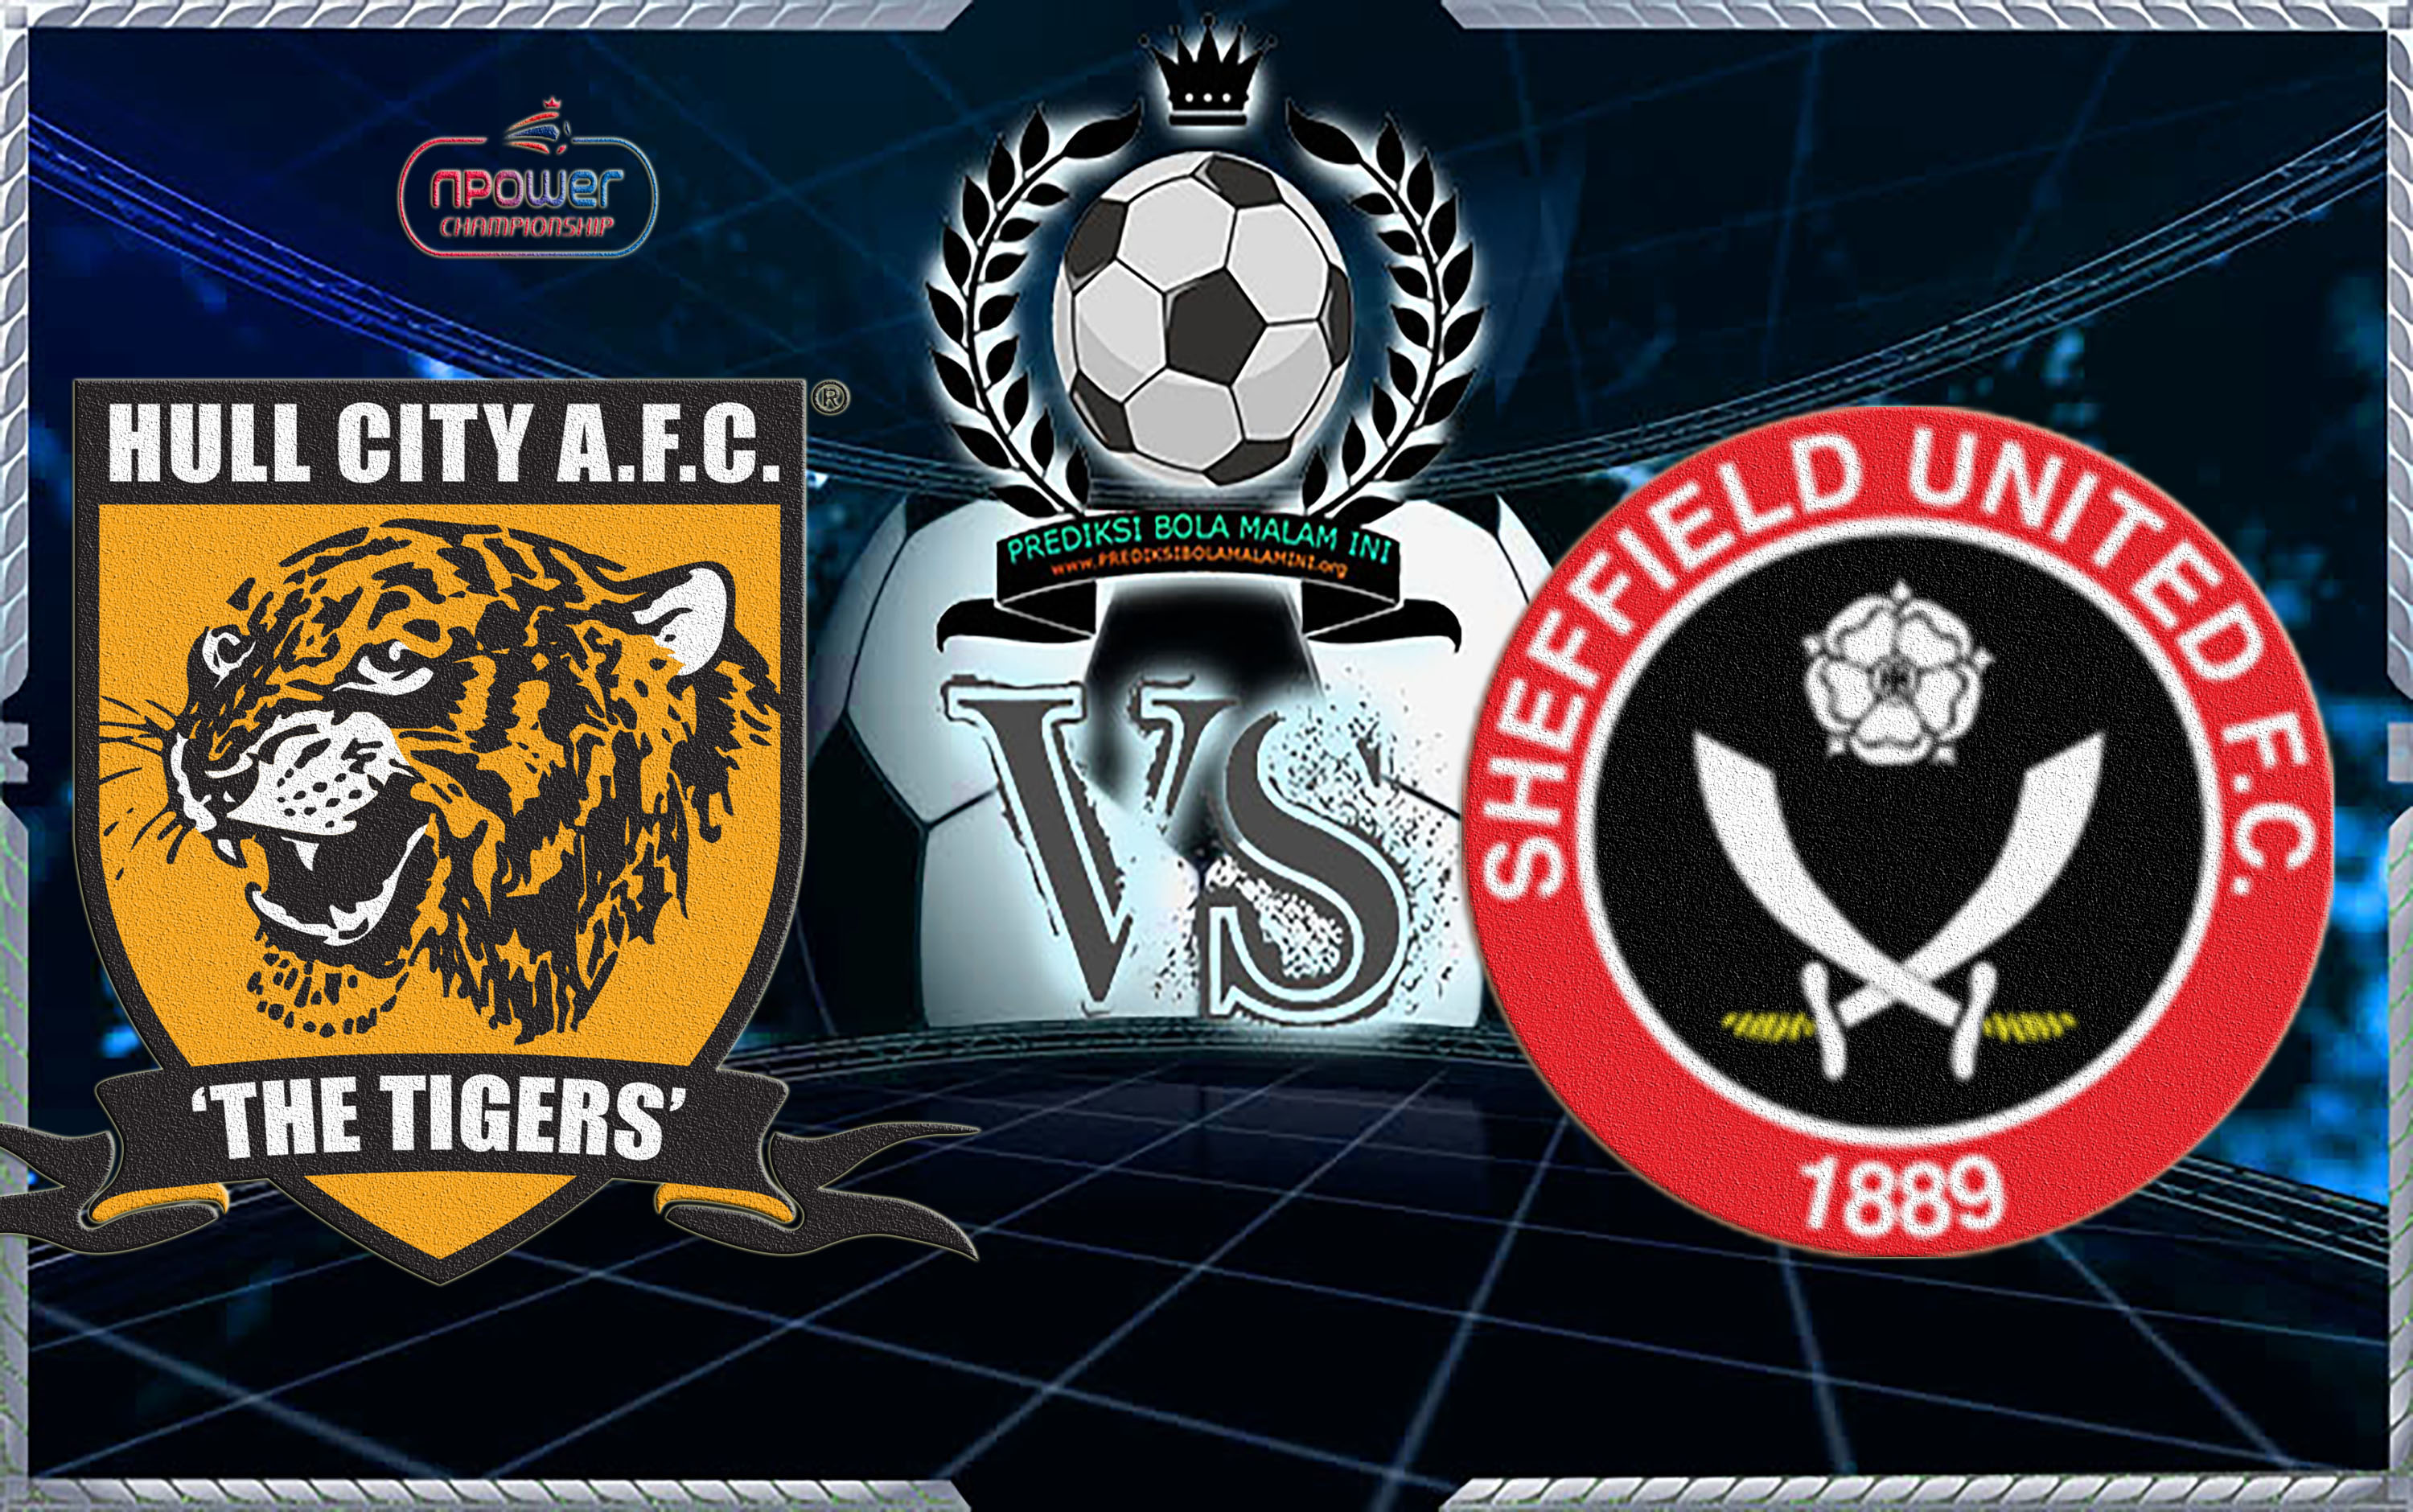 Prediksi Sepatu Hull City Vs Sheffield United 24 Februari 2018 &quot;width =&quot; 640 &quot;height =&quot; 401 &quot;/&gt; </p> <p> <span style=